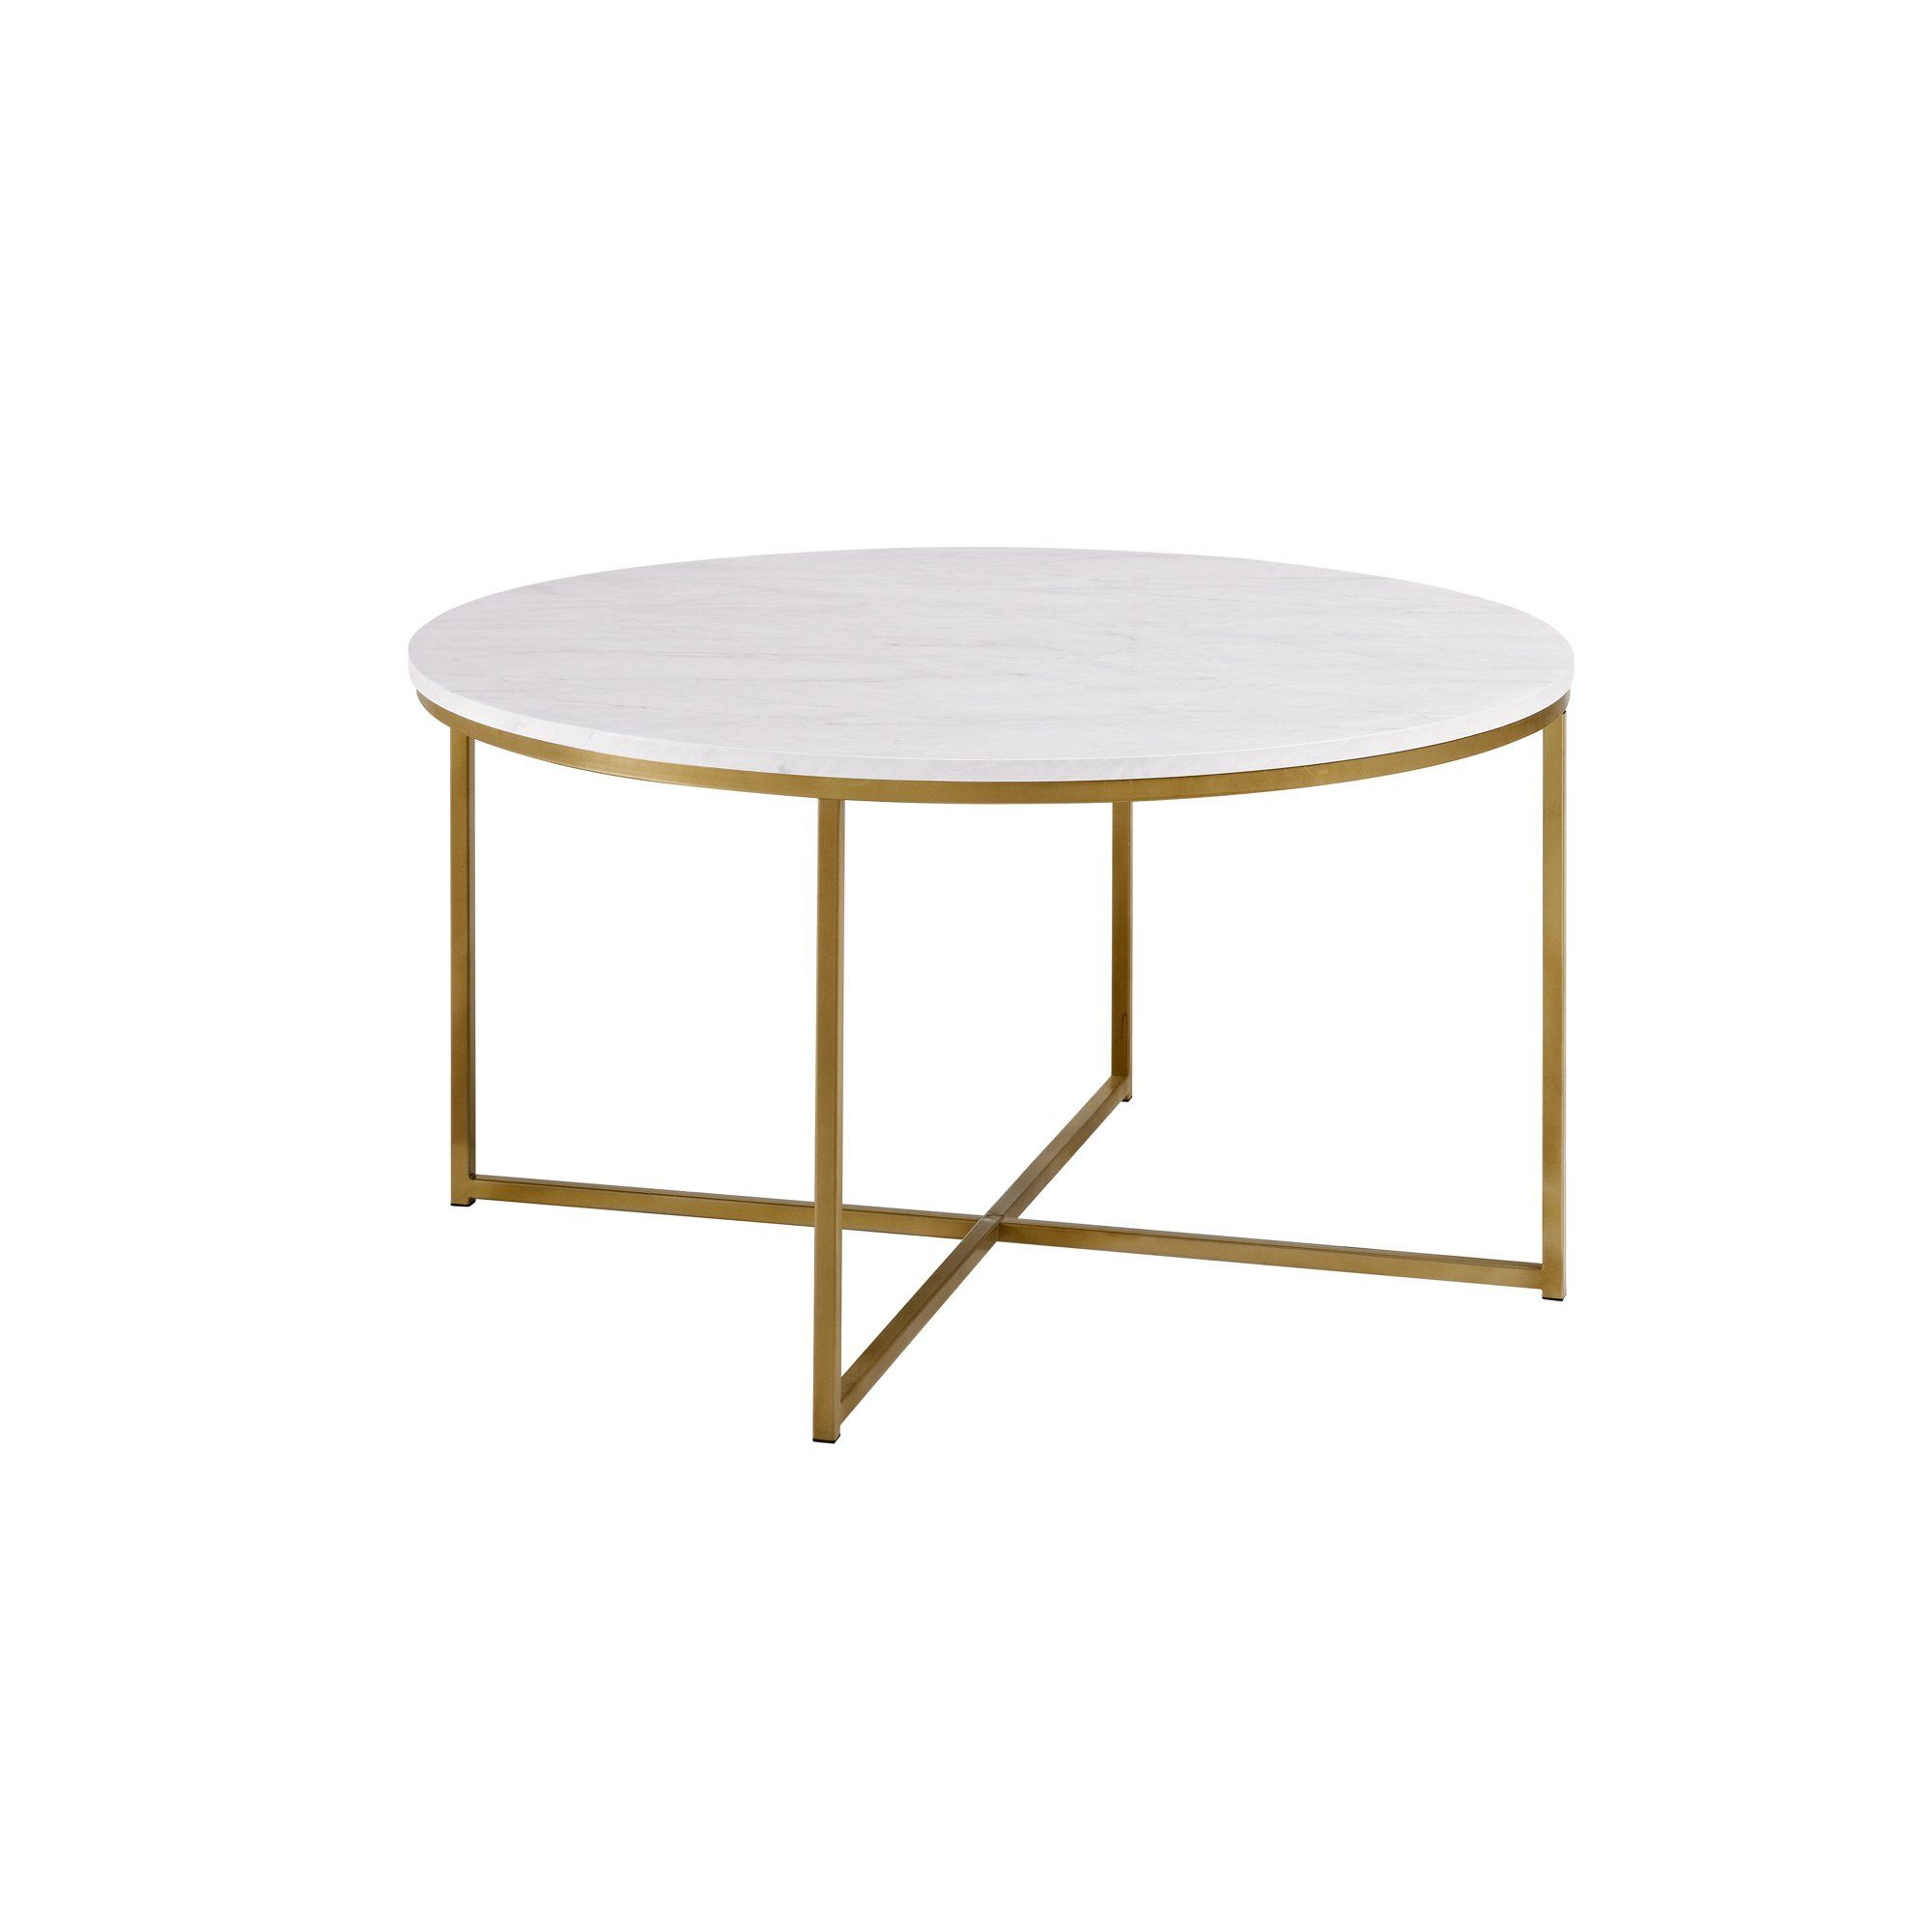 Ember Interiors Daisy Faux Marble And Gold Round Coffee Table Marble Gold Walmart Com Coffee Table Round Coffee Table Round Glass Coffee Table [ 2000 x 2000 Pixel ]